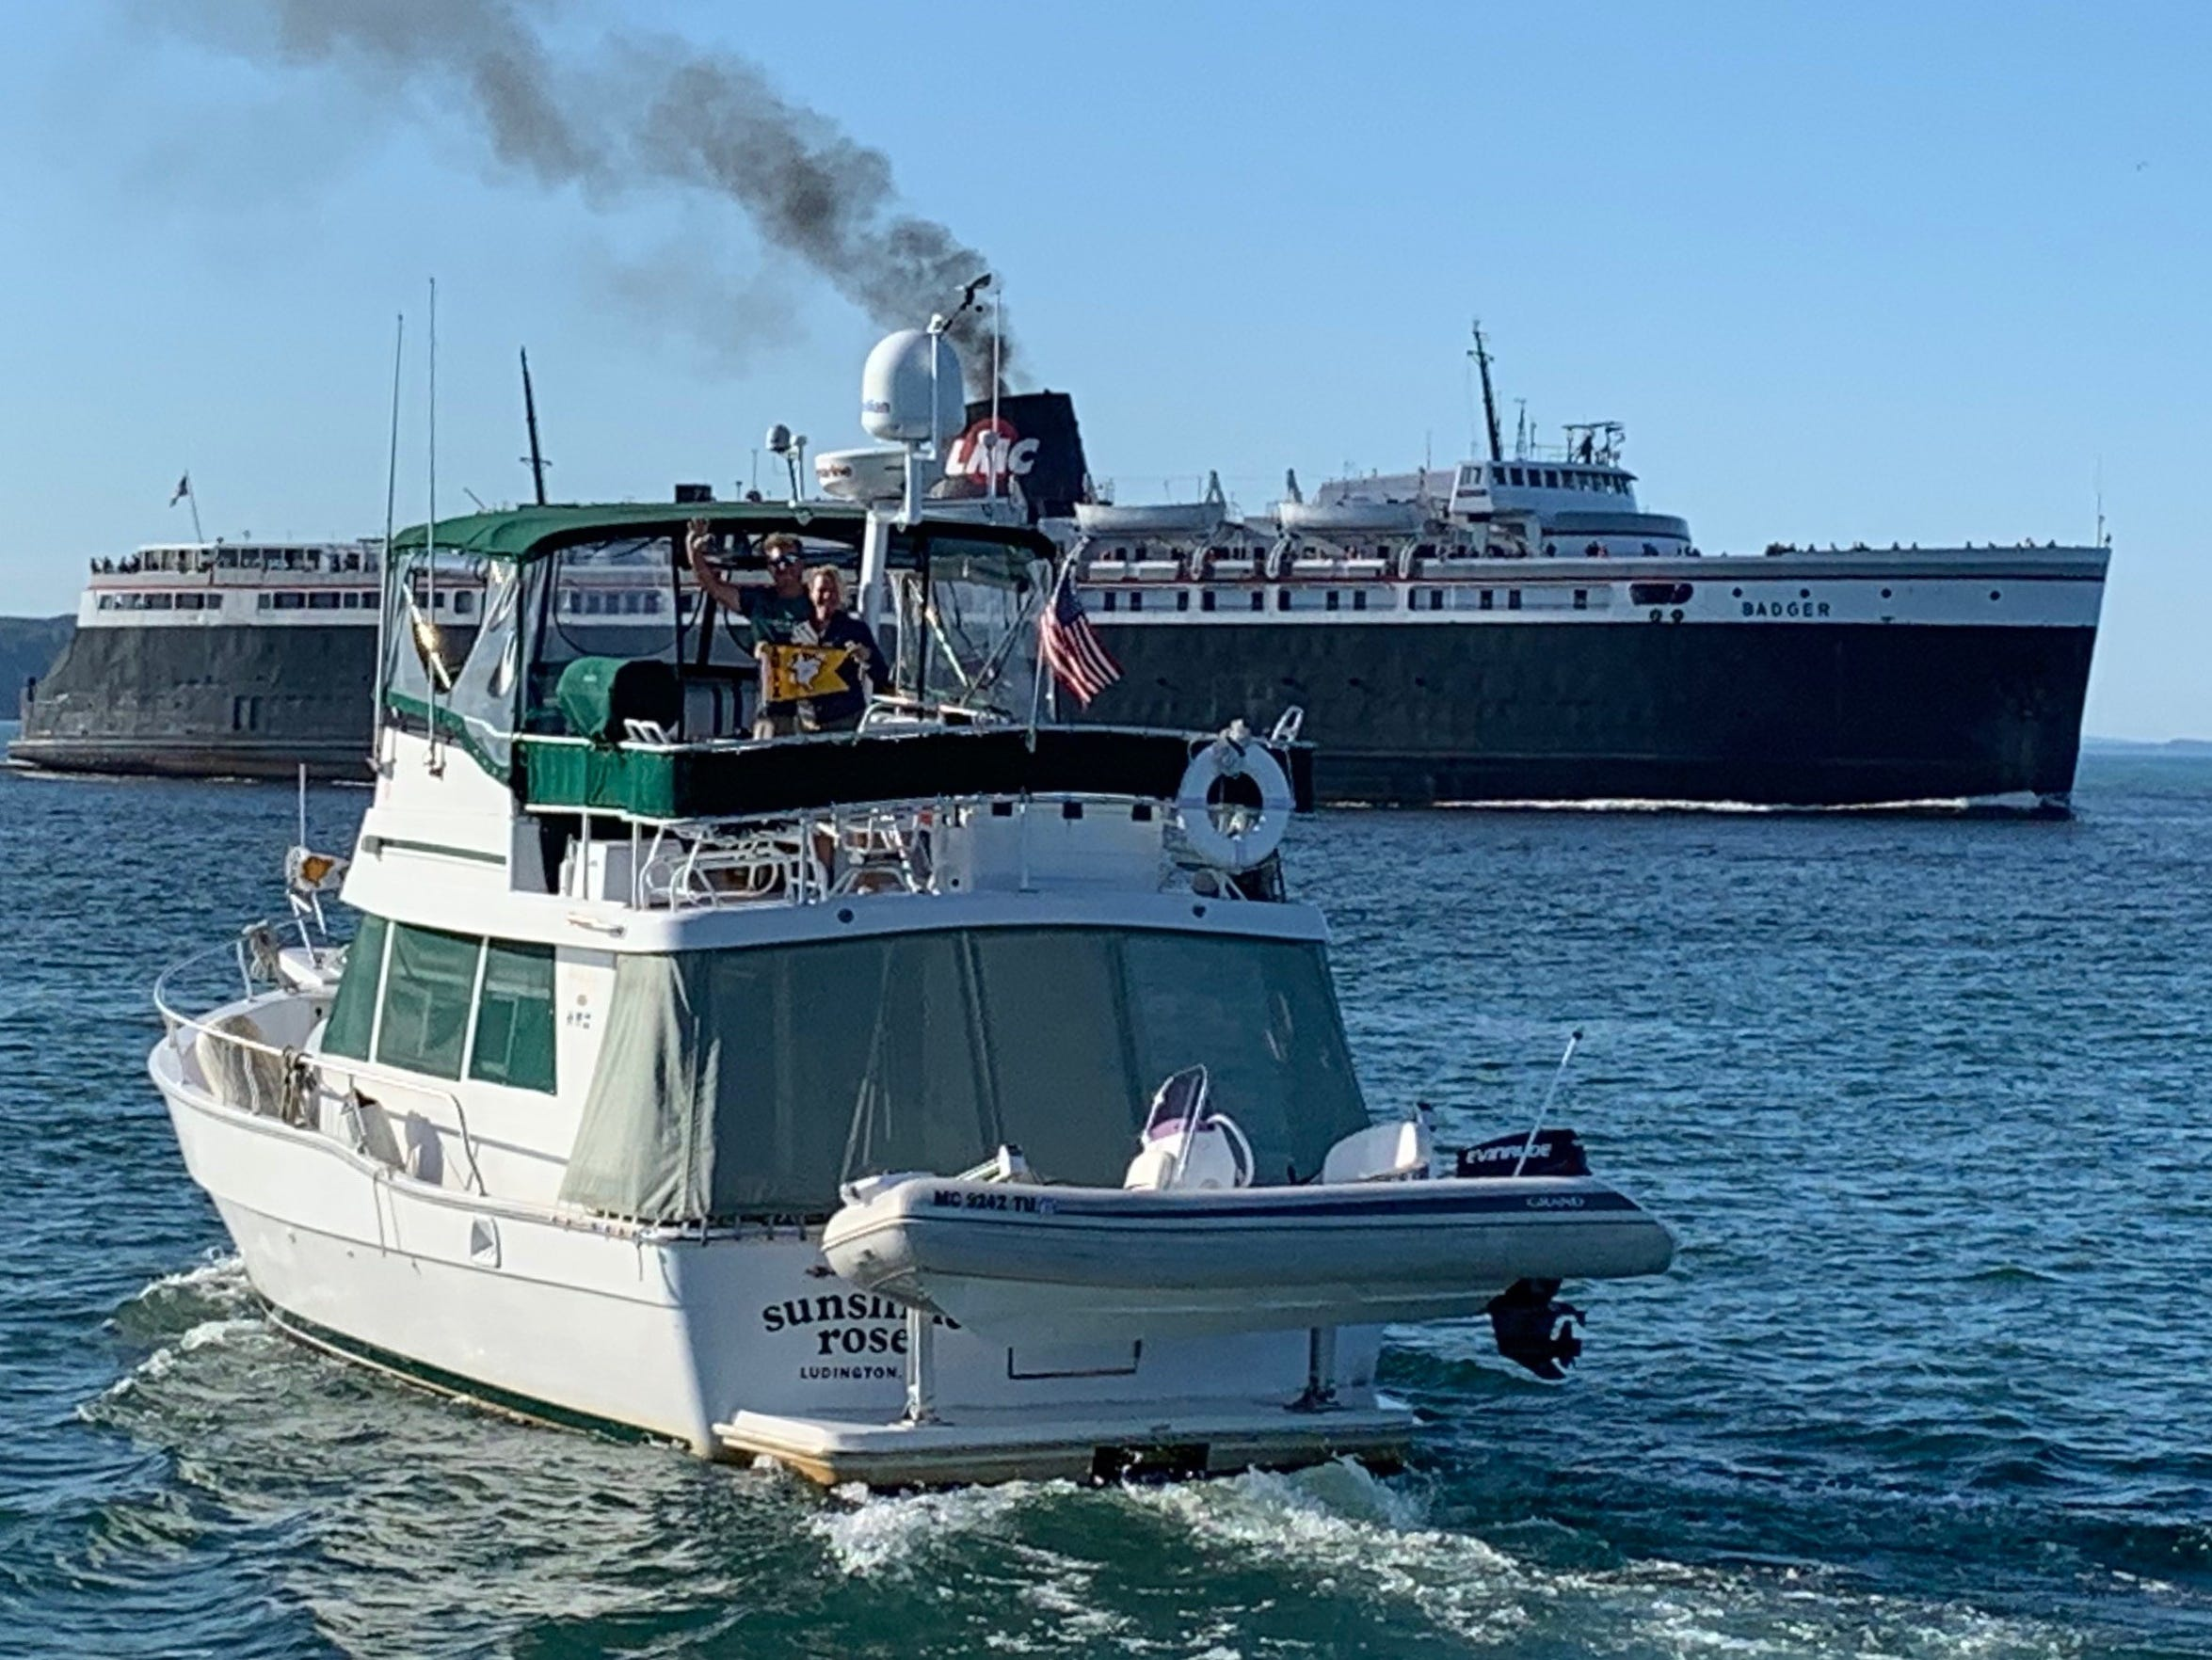 The Sunshine Rose heads into Ludington, completing a 5,600 mile Great Loop journey while the SS Badger makes its way to Manitowoc, Wisc.